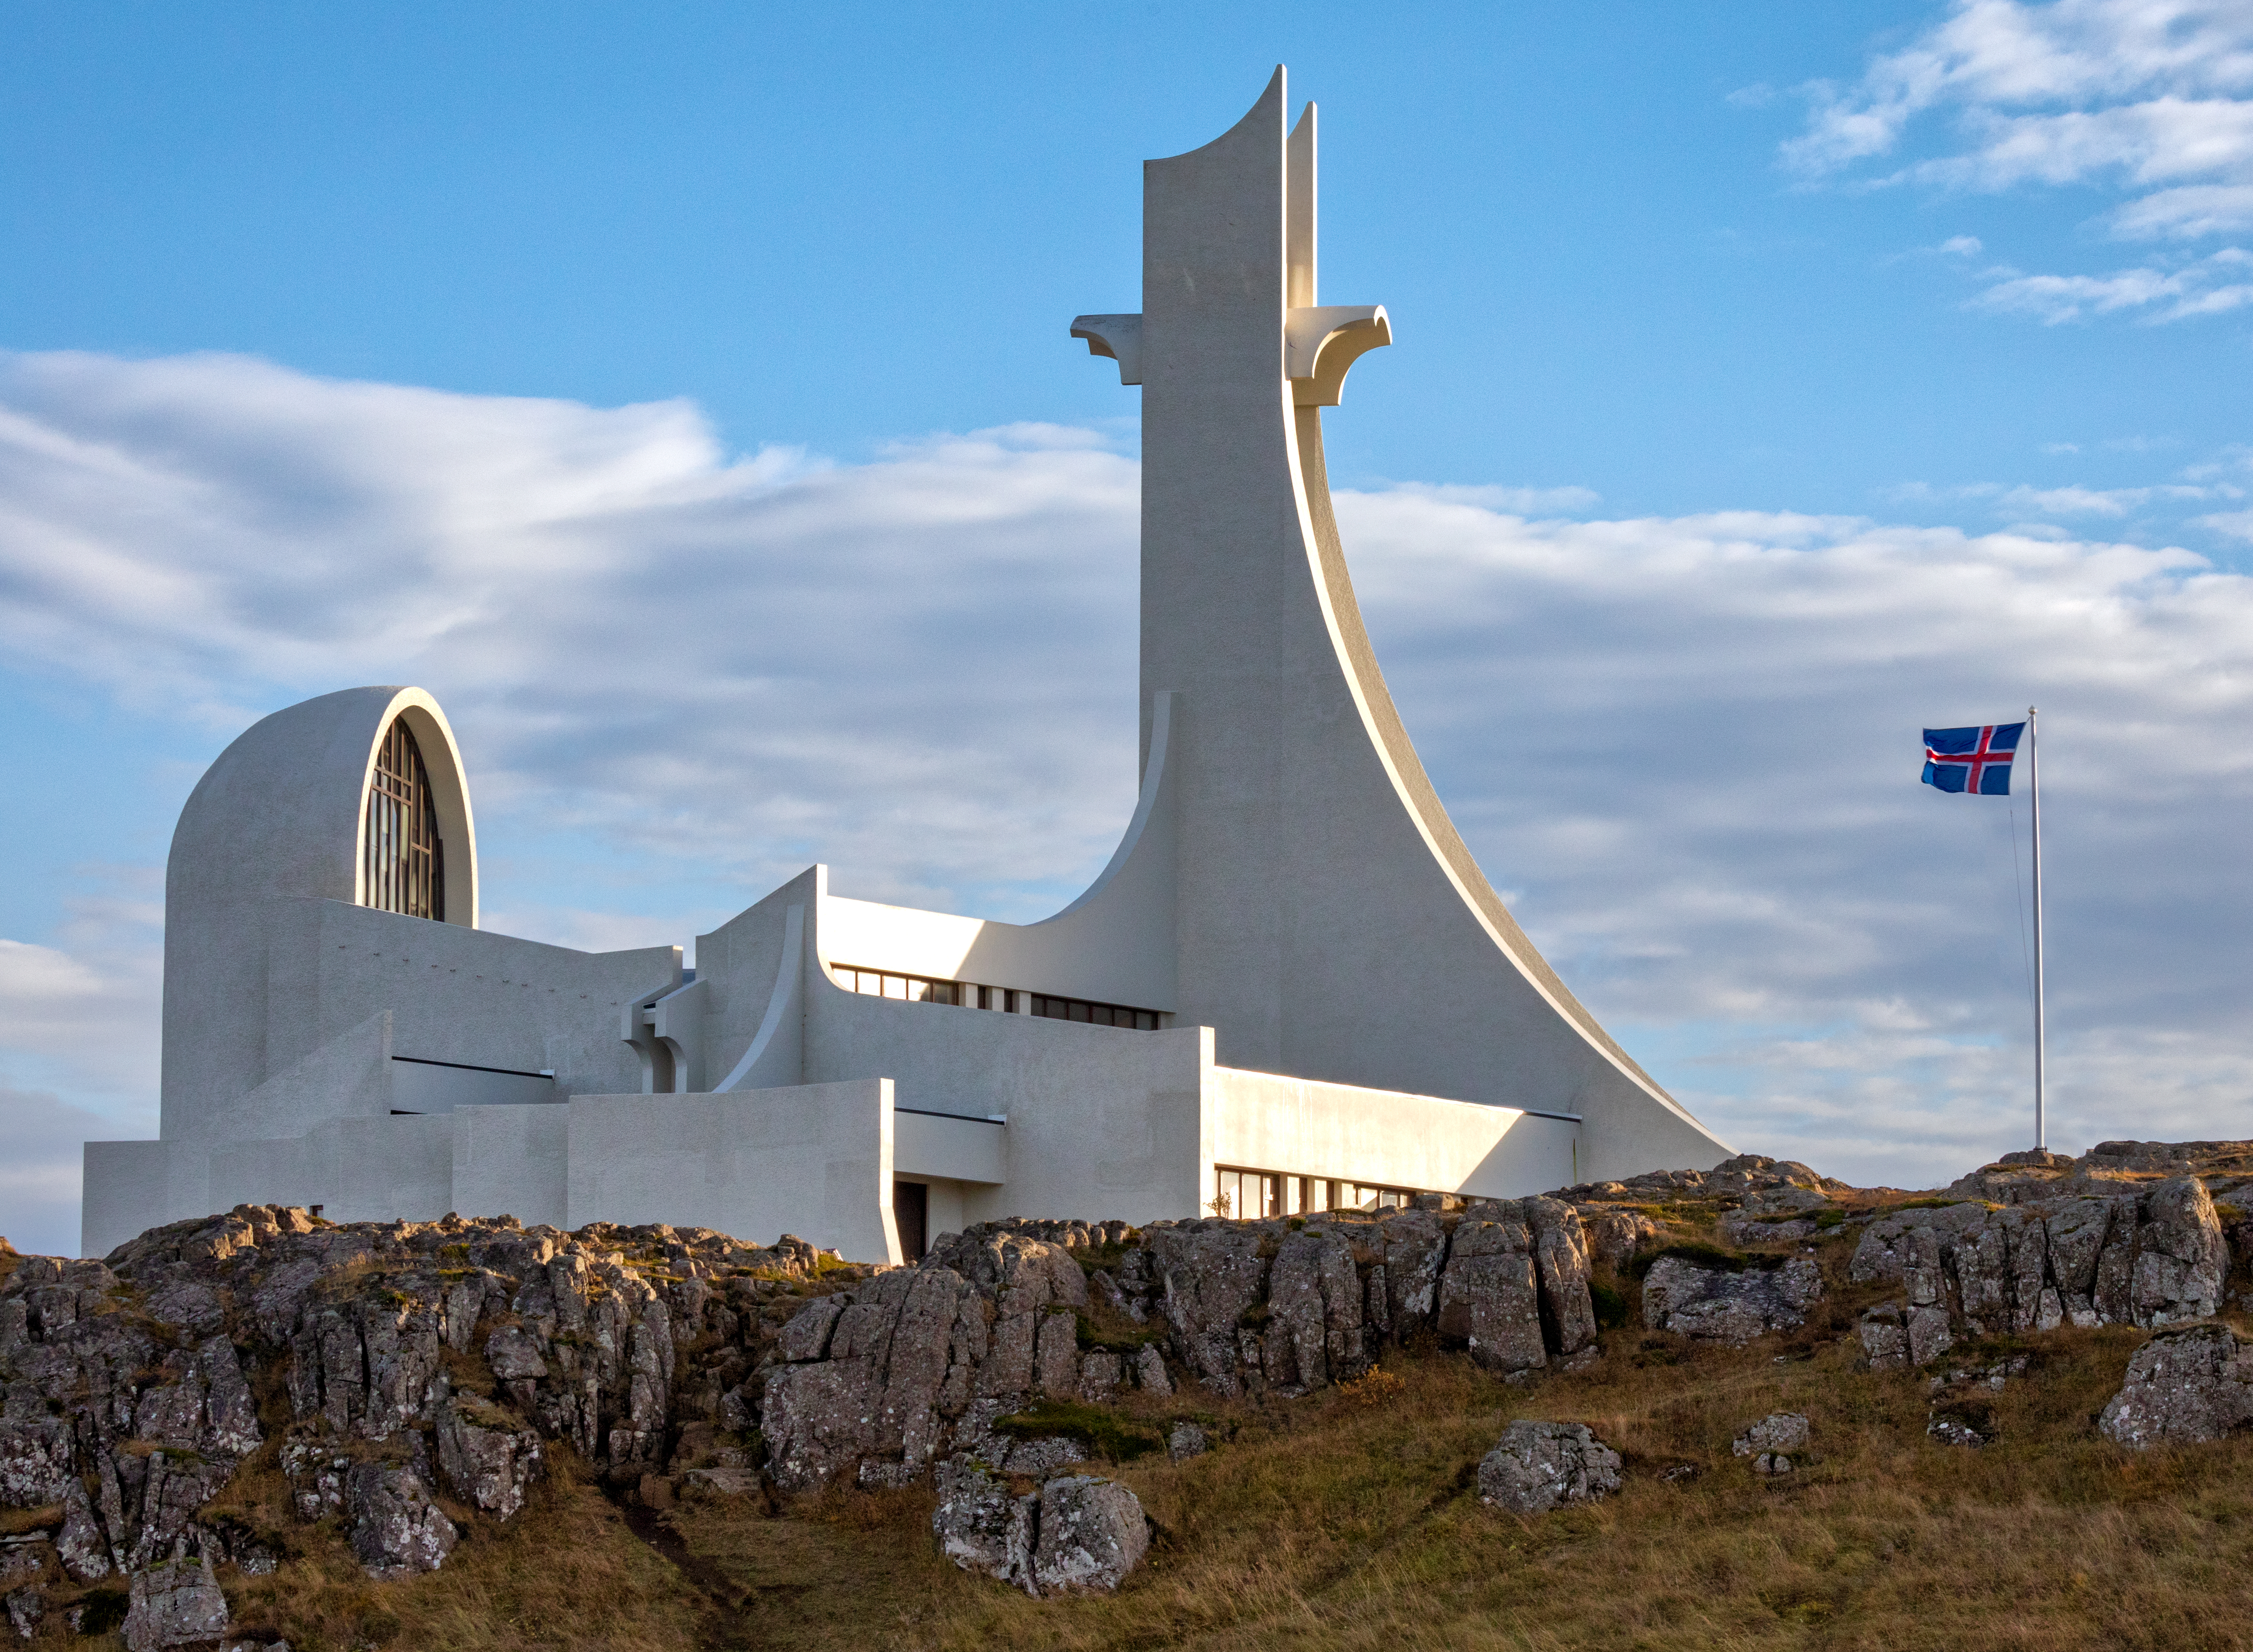 Stykkishólmur Church is a contemporary concrete structure built in 1980. It overlooking the town of Stykkishólmur in western Iceland, on the northern edge of Snæfellsnes peninsula.